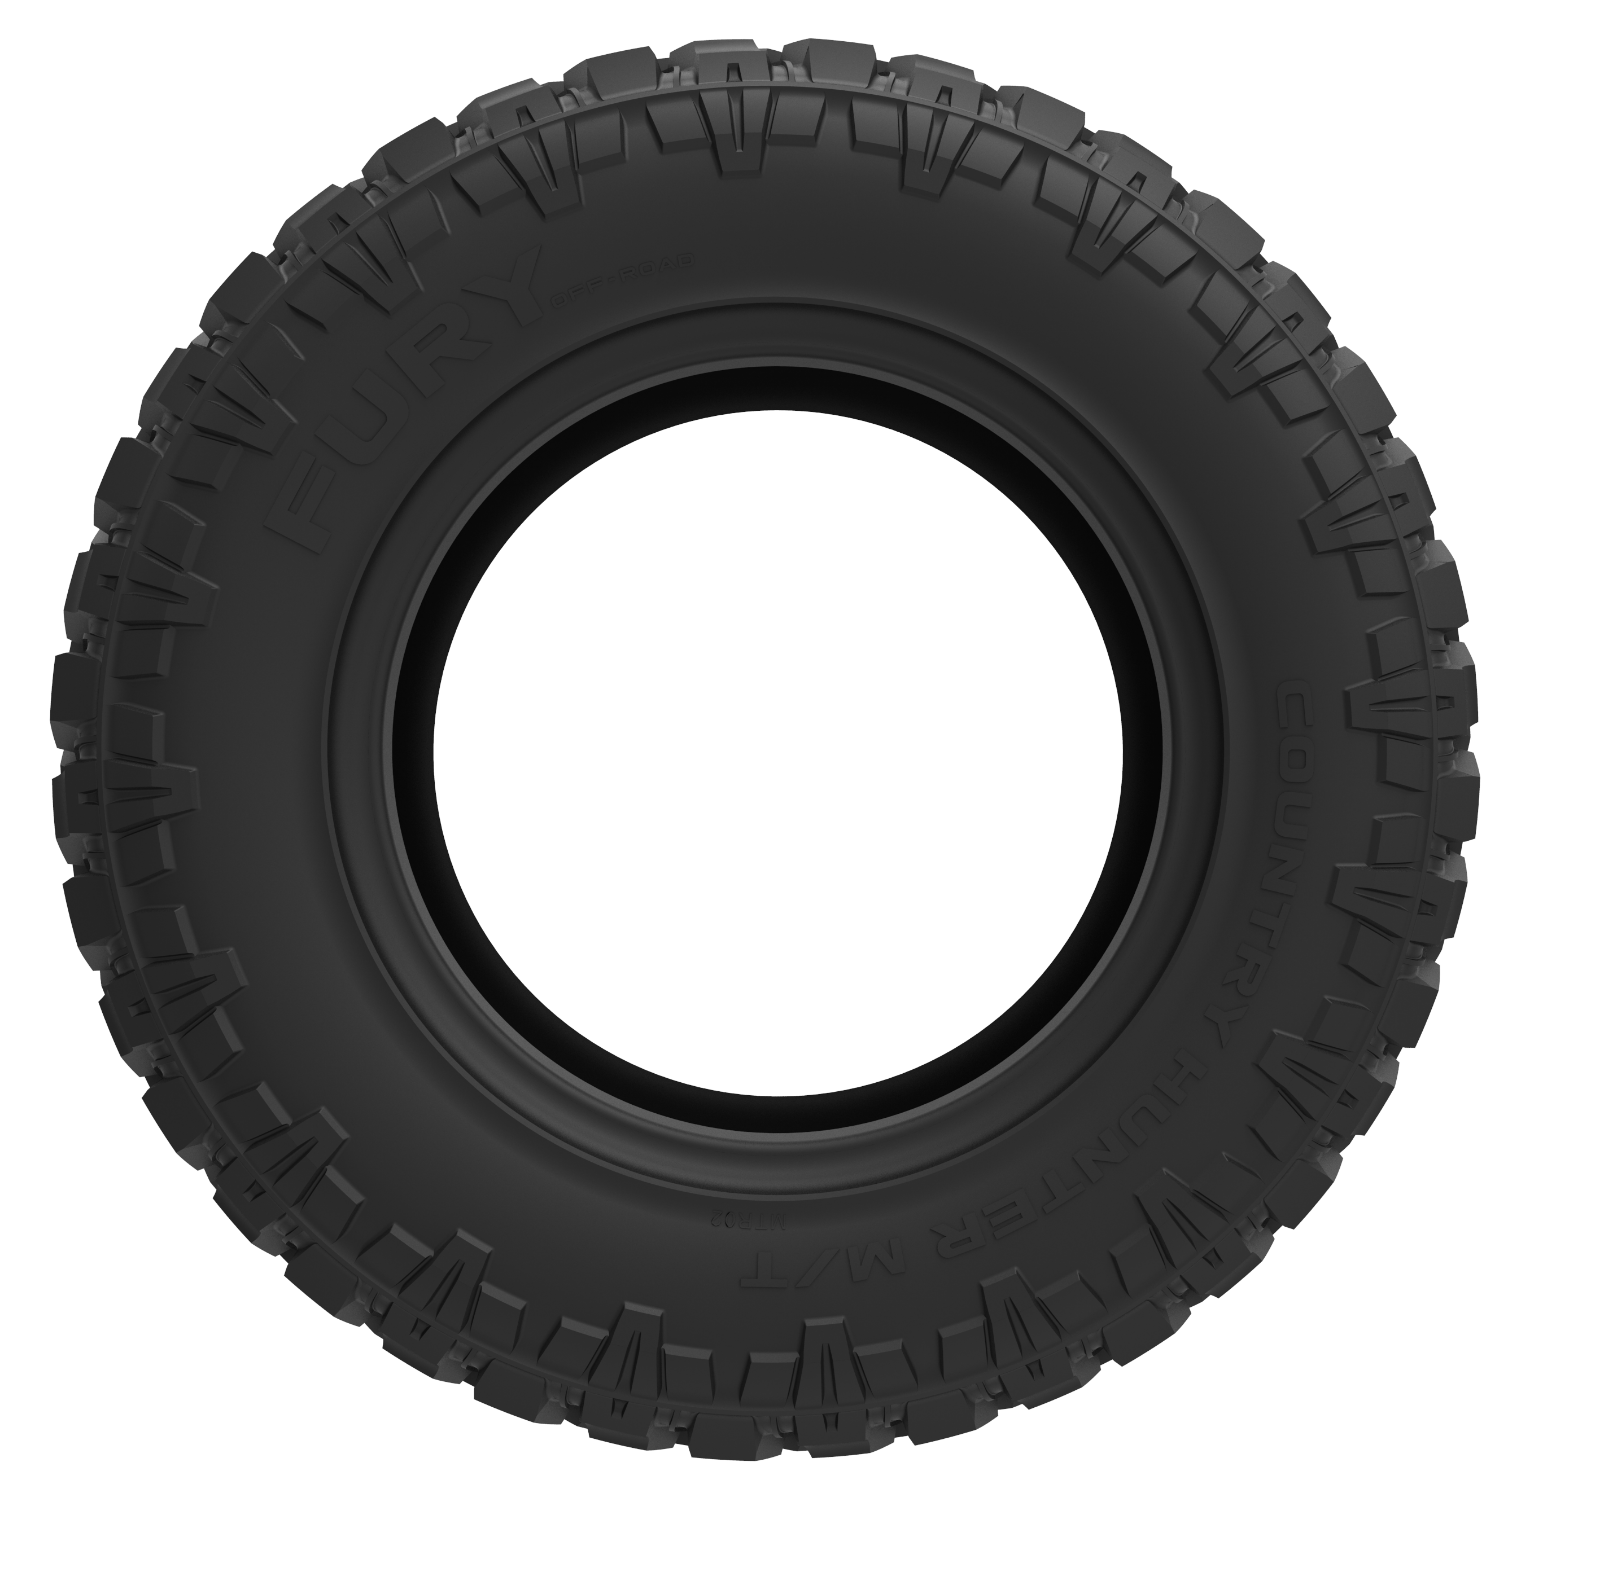 42X16.50R30LT FURY OFF-ROAD COUNTRY HUNTER M/T II 127Q 10PLY (SET OF 4) image 4